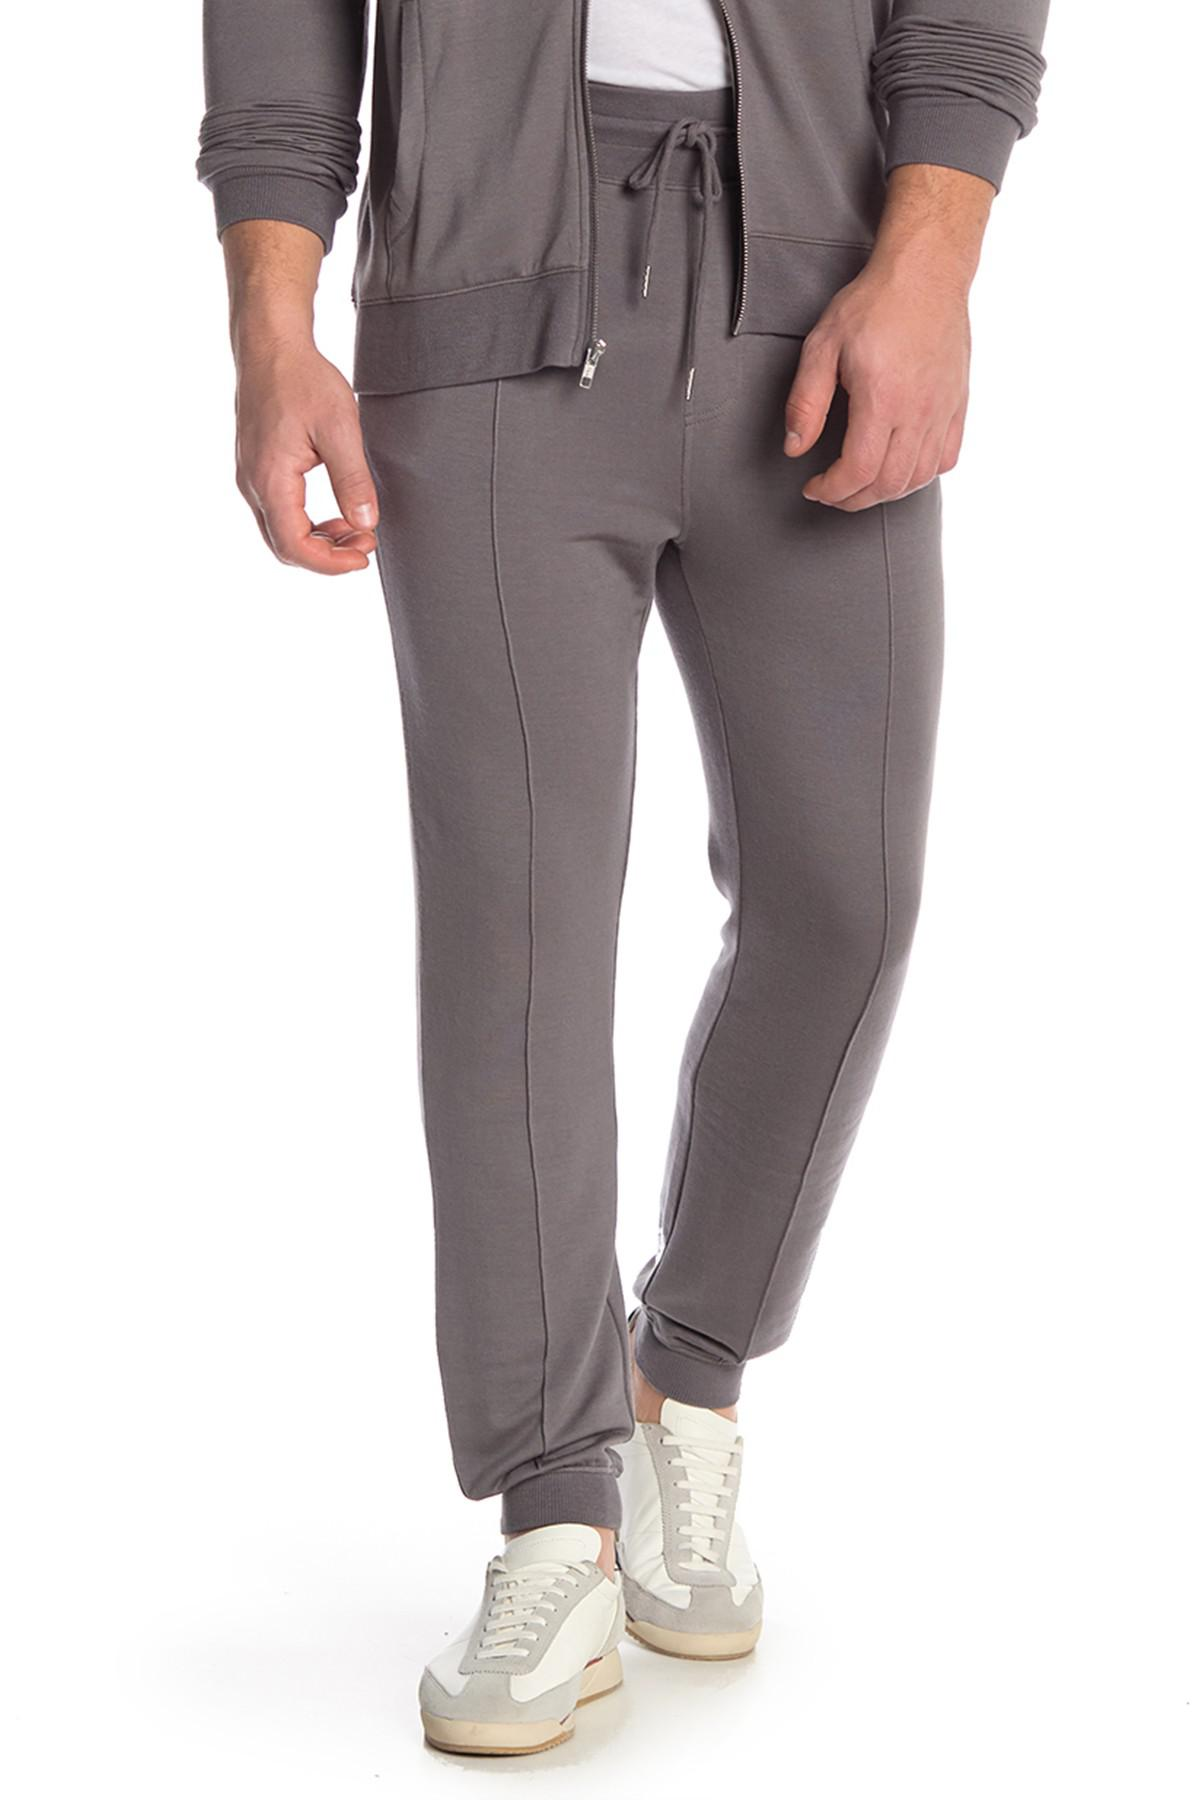 6e0477facd64 Threads For Thought - Gray Shuttle Jogger Sweatpants for Men - Lyst. View  fullscreen